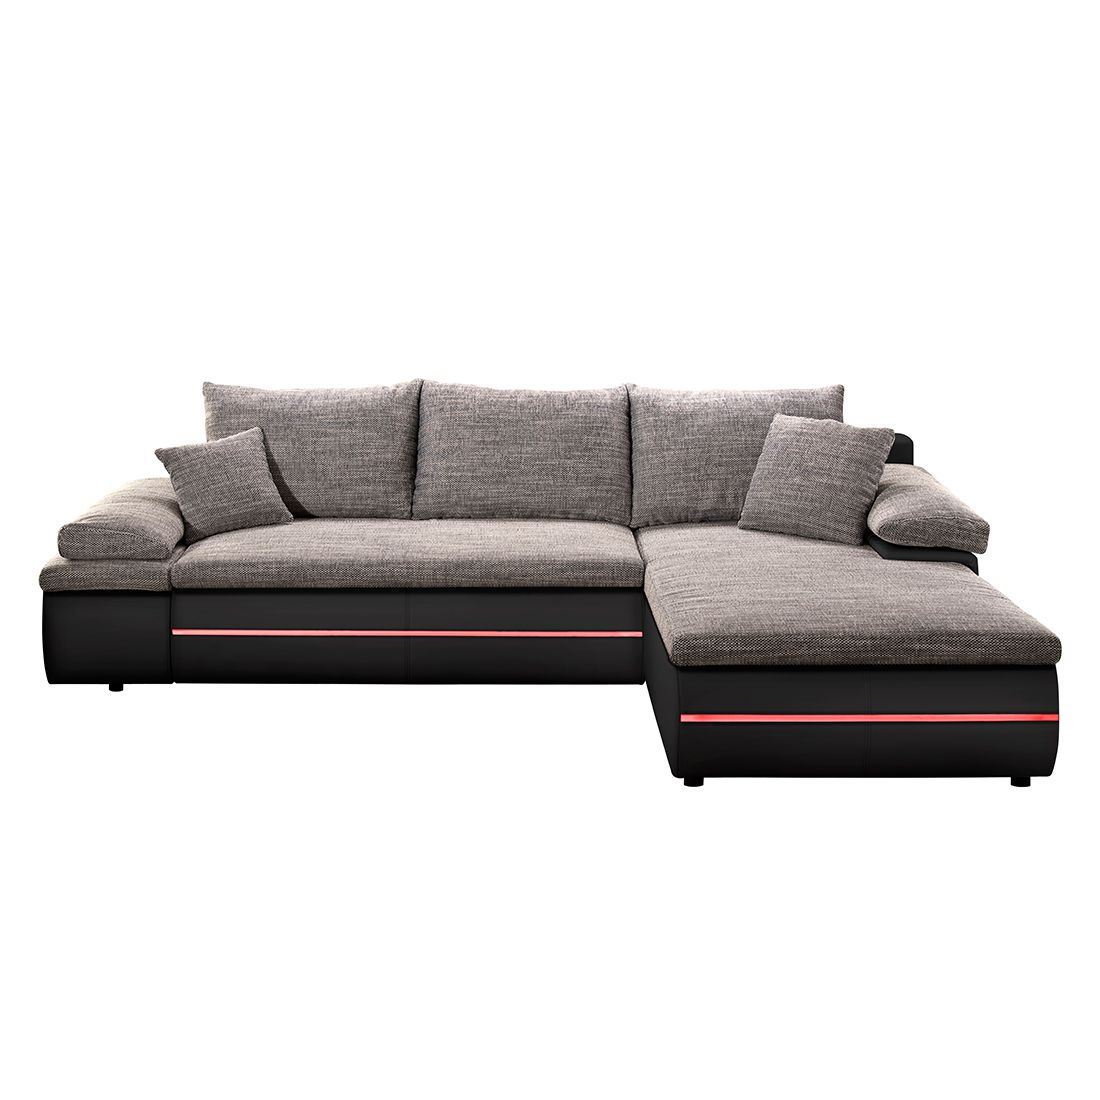 ecksofa leder mit schlaffunktion ecksofa polsterecke echt leder dickleder schwarz mit. Black Bedroom Furniture Sets. Home Design Ideas